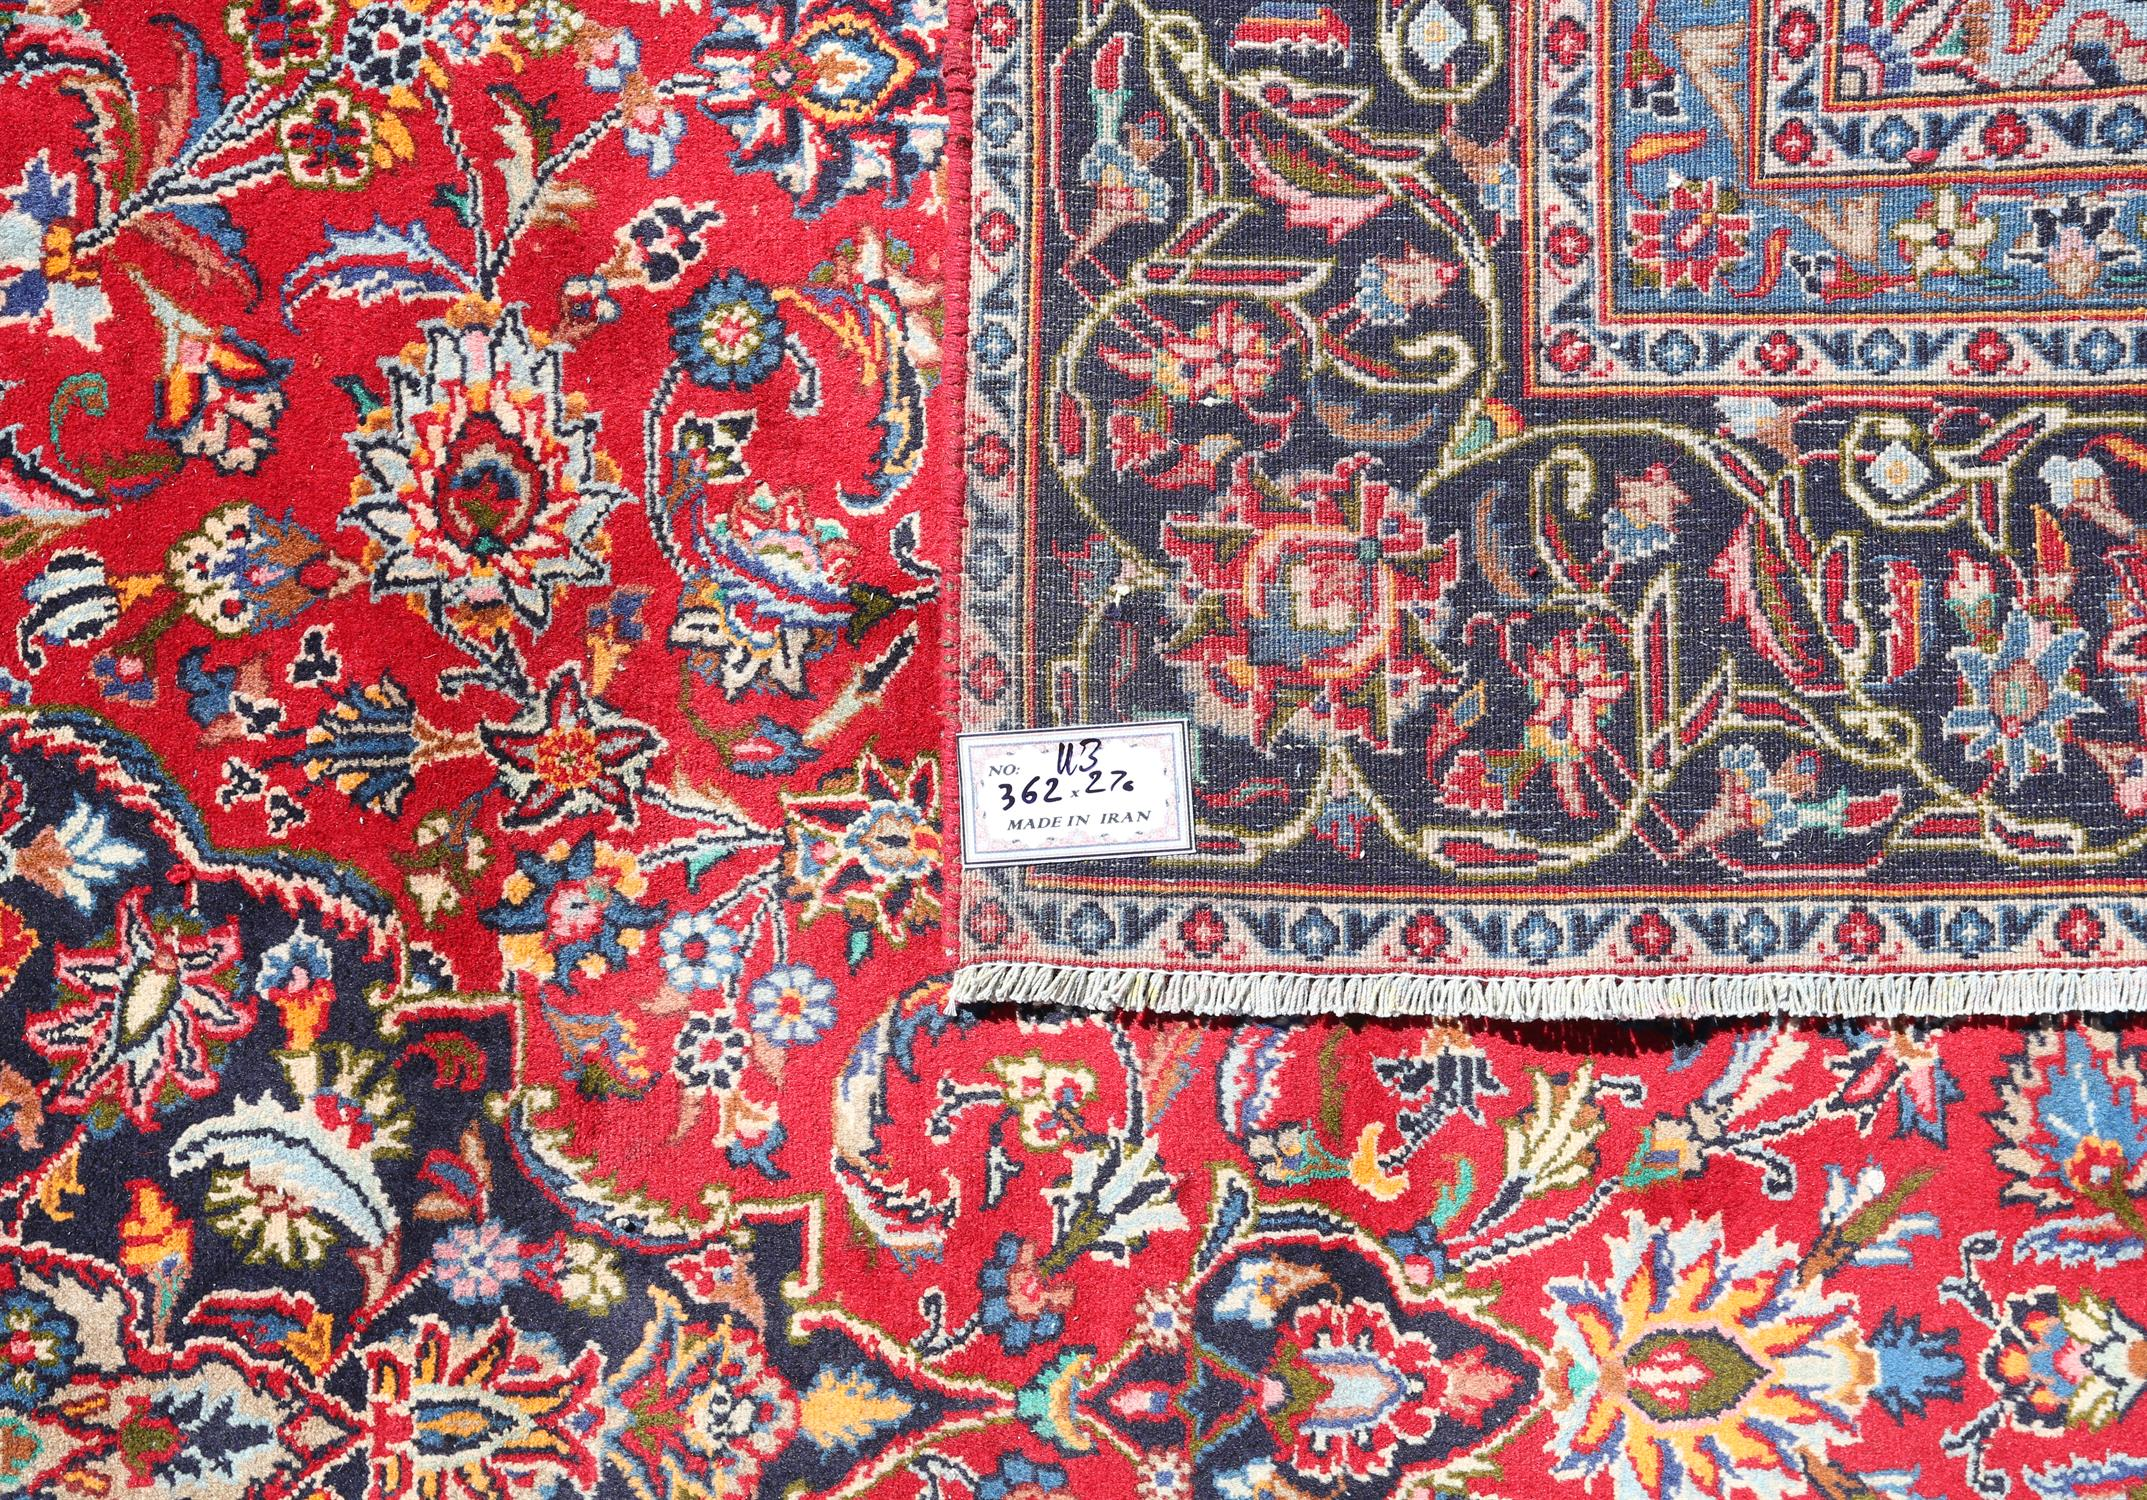 Large Persian full pile Kashan carpet, with traditional design of central floral medallion and - Image 2 of 2